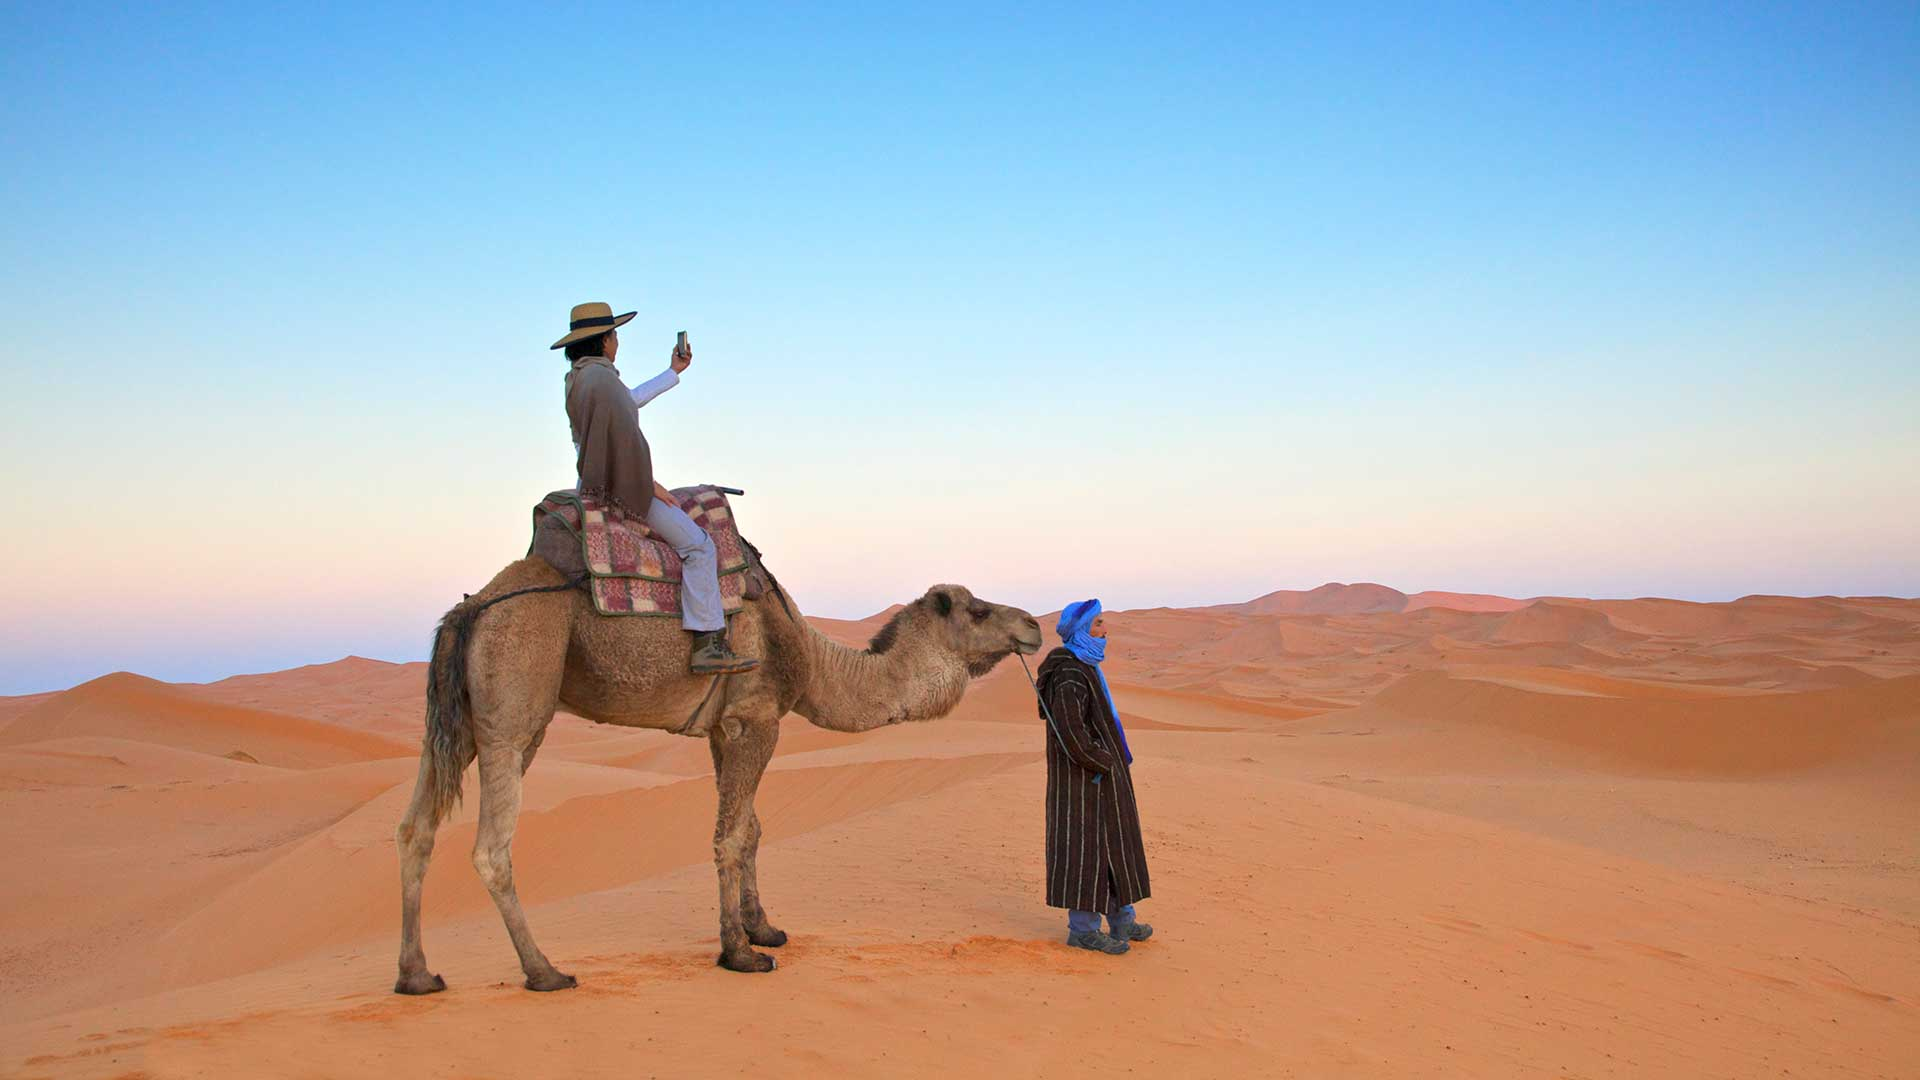 In the desert on a camel taking a photograph, Merzouga